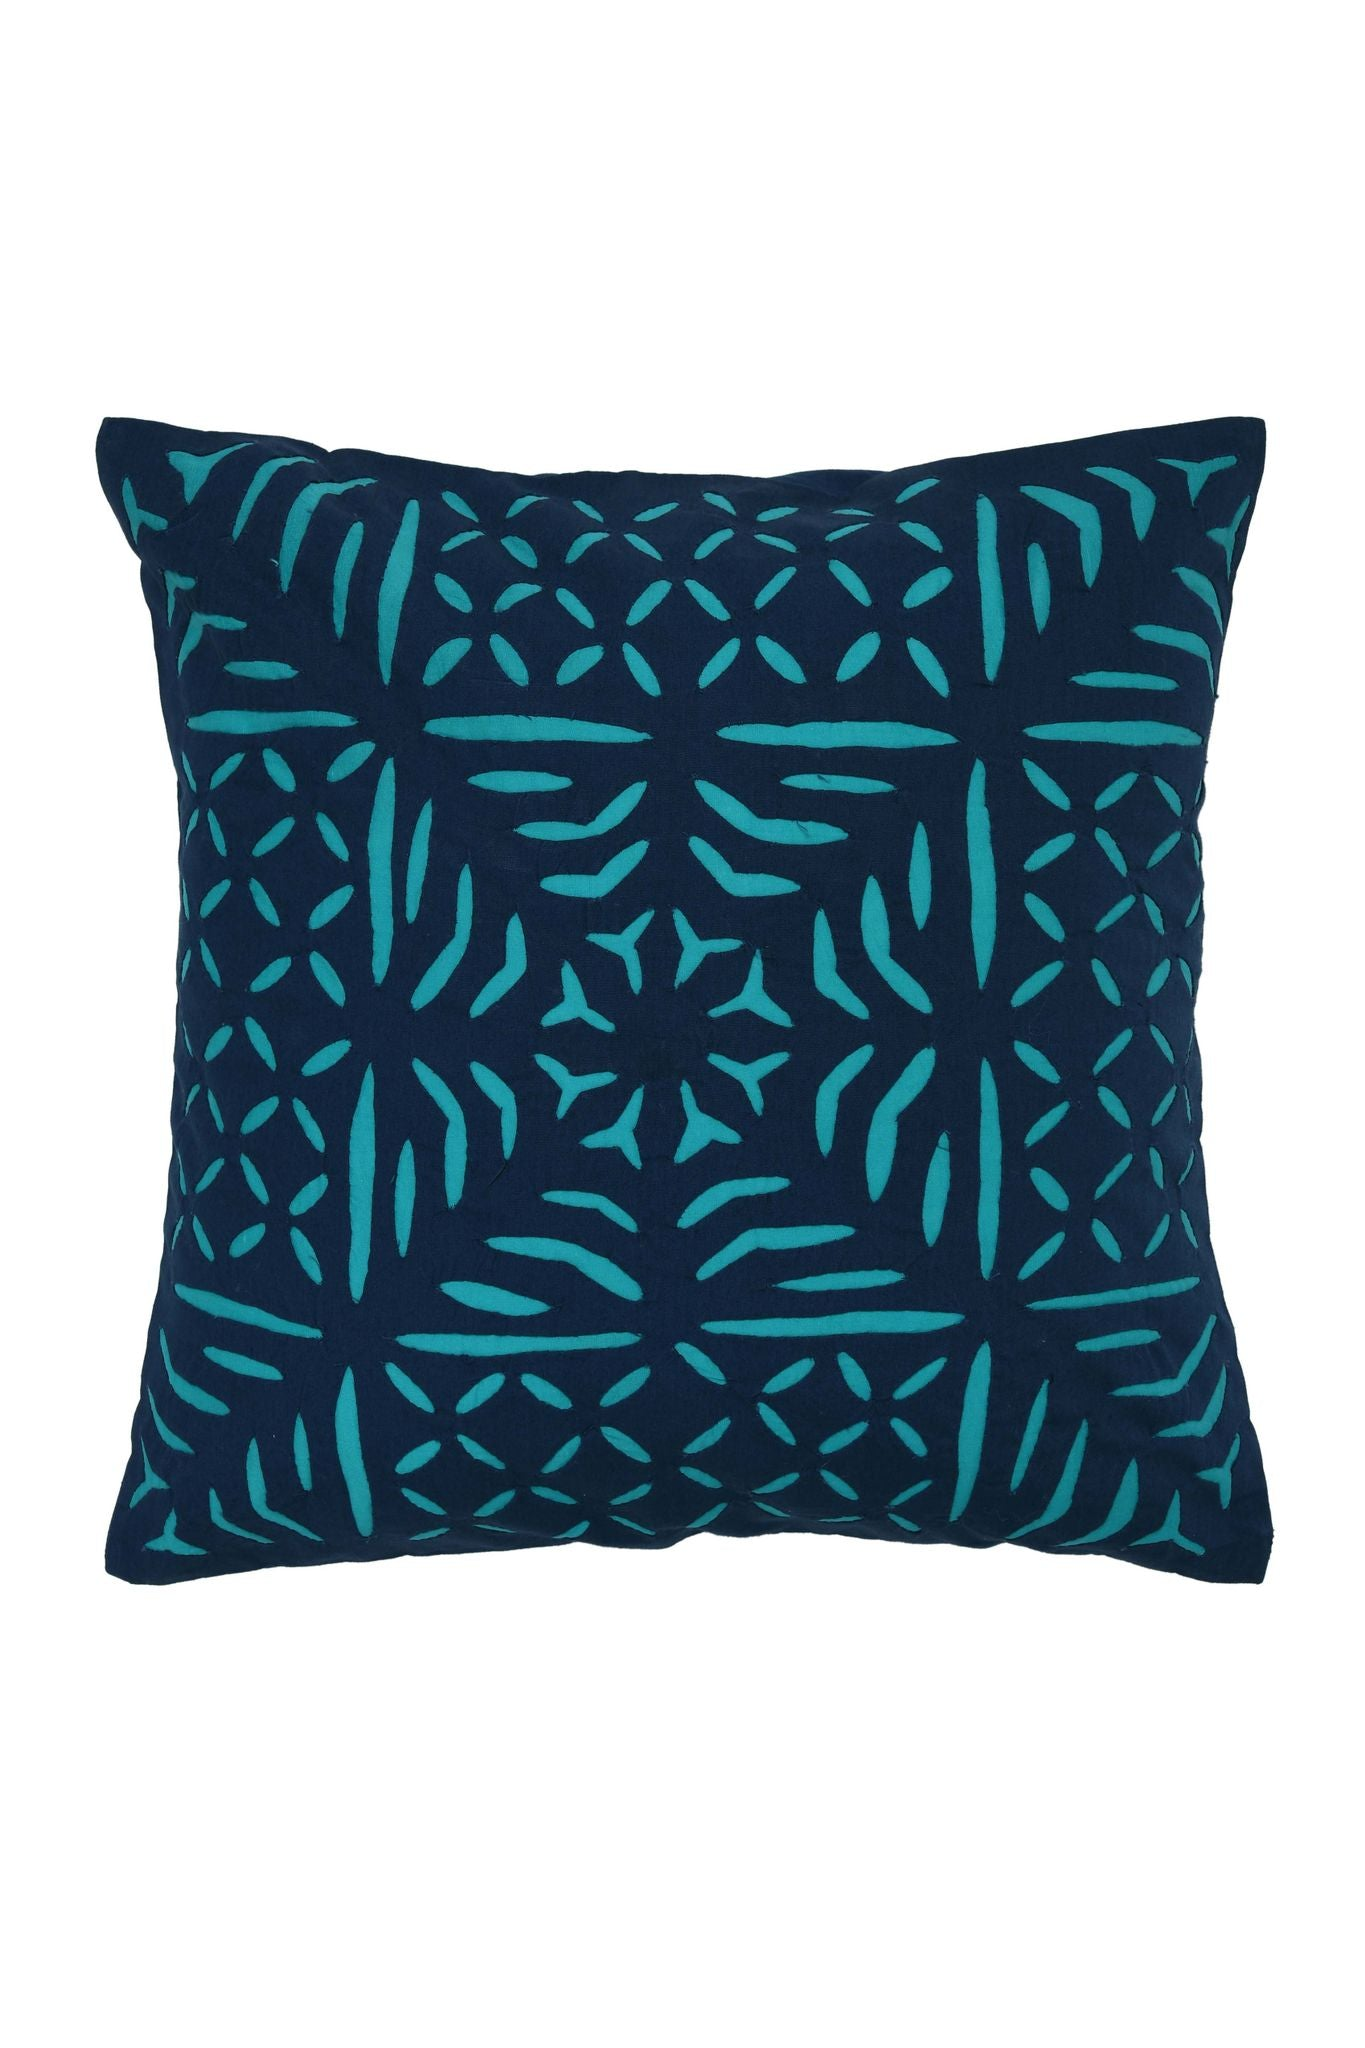 Hand Applique Navy and Turquoise Cushion Cover